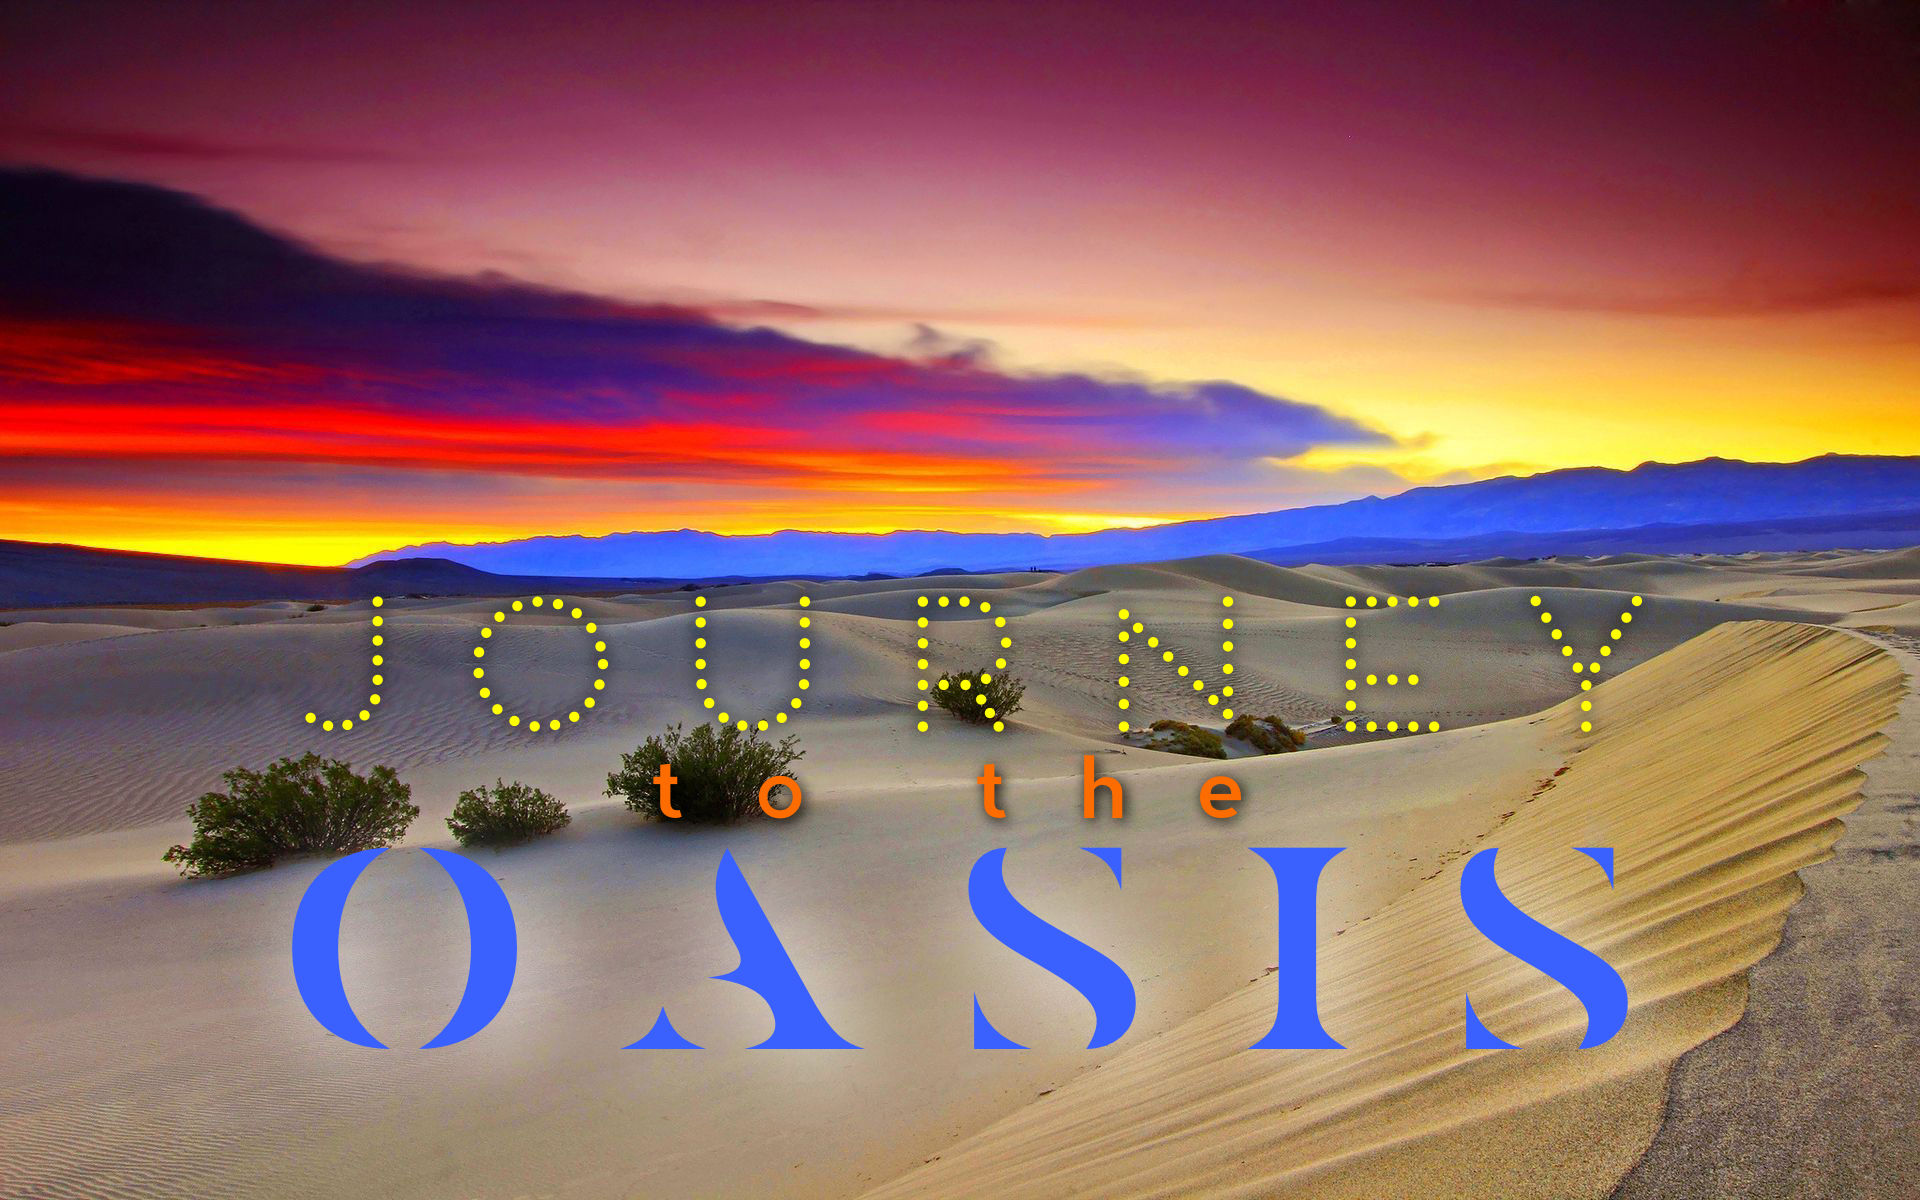 Journey to the Oasis  (Grade 3.5)